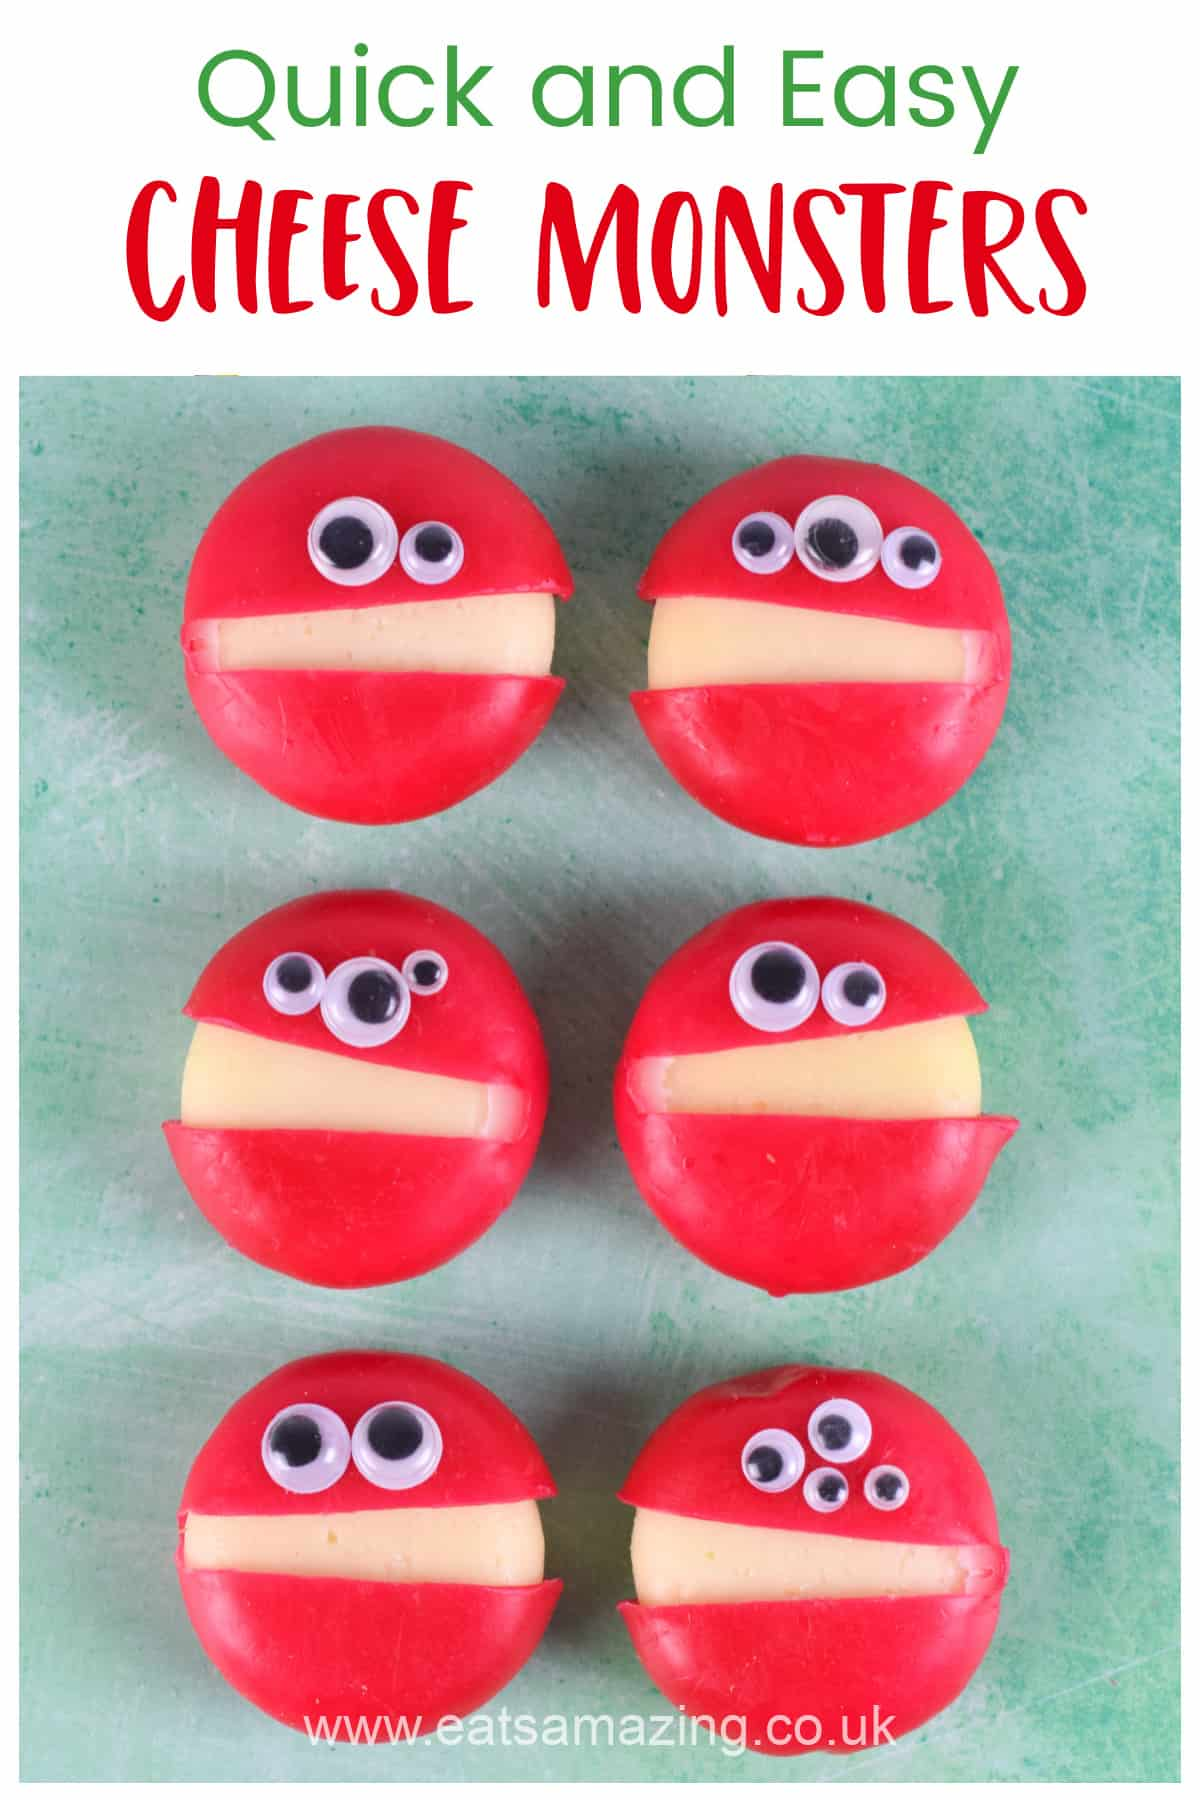 How to make quick and easy Babybel cheese Monsters for healthy kids party food and fun Halloween snacks